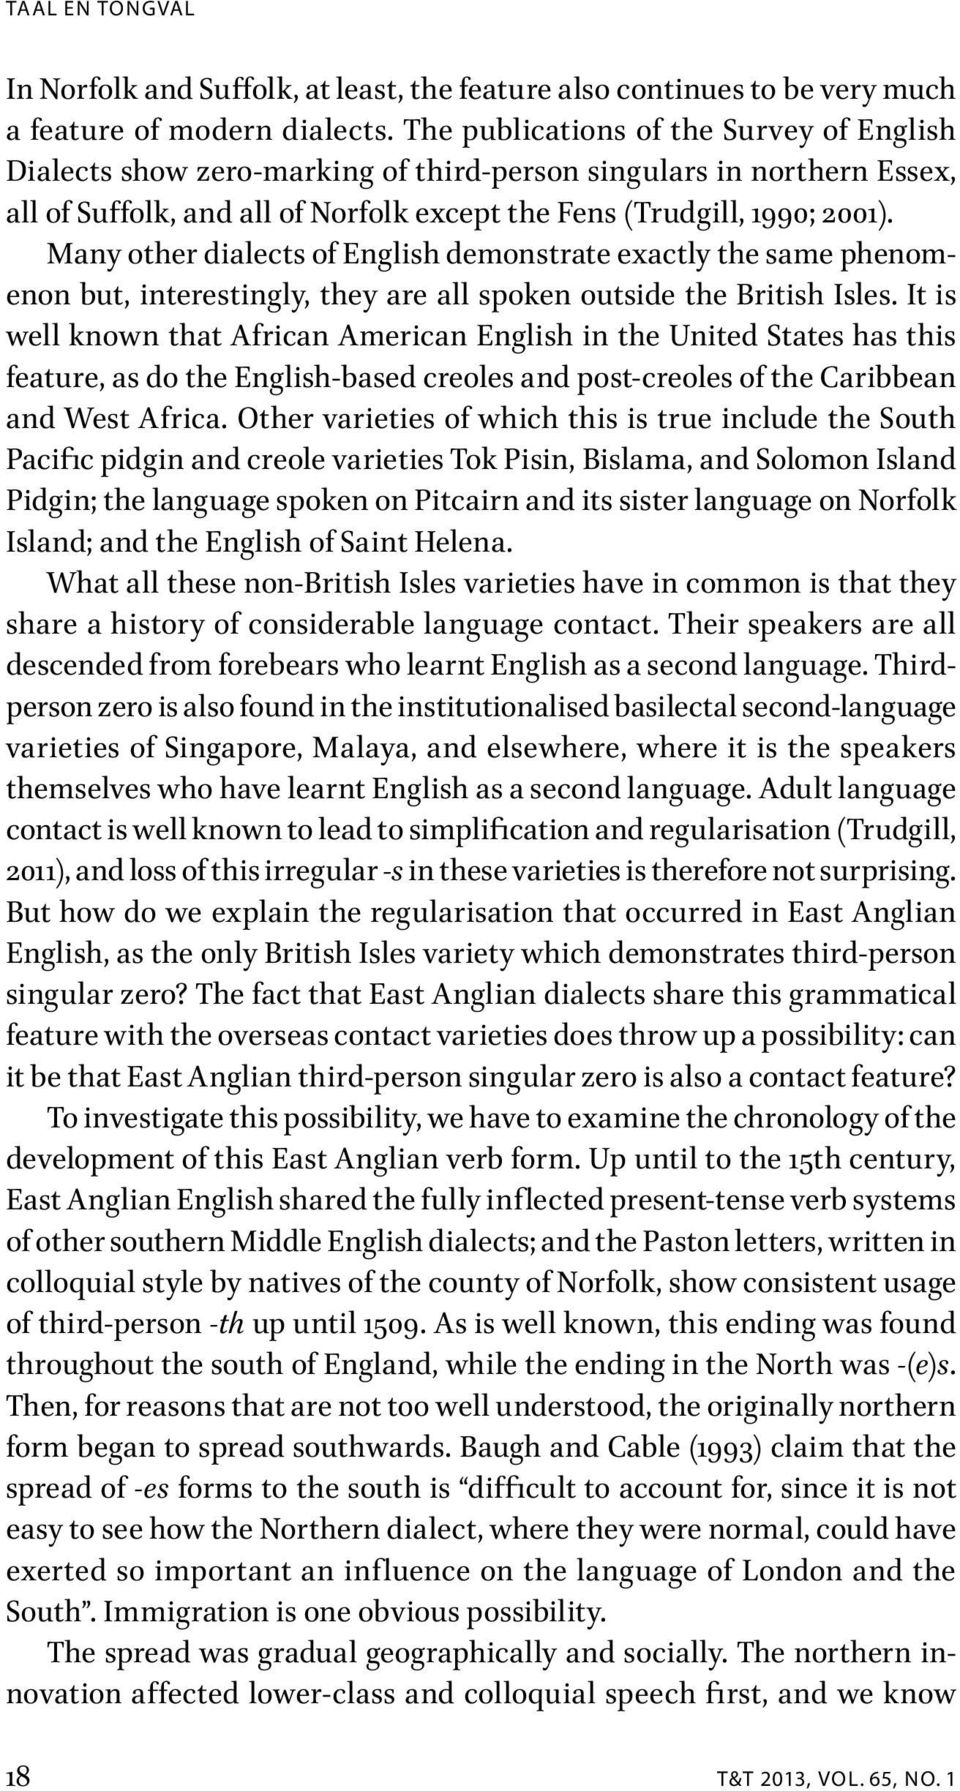 Many other dialects of English demonstrate exactly the same phenomenon but, interestingly, they are all spoken outside the British Isles.